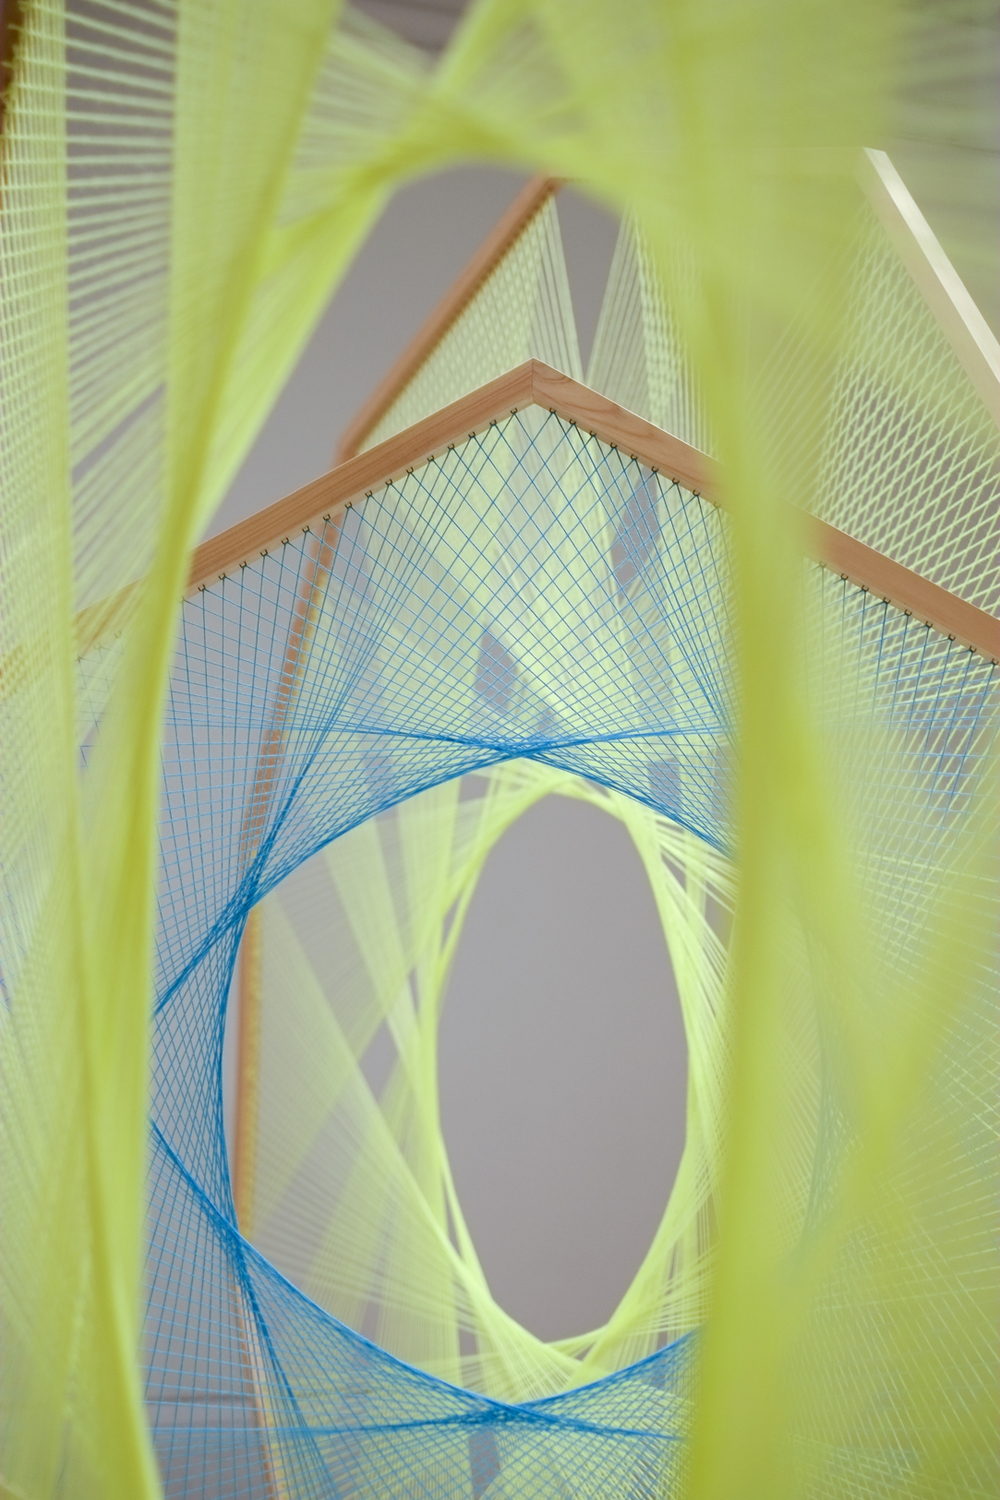 NIKE SAVVAS     Sliding Ladders: yellow with blue pentagon (detail)  2012 wool, wood, steel, image credit: Jonty Wilde 231.5 x 382 cm